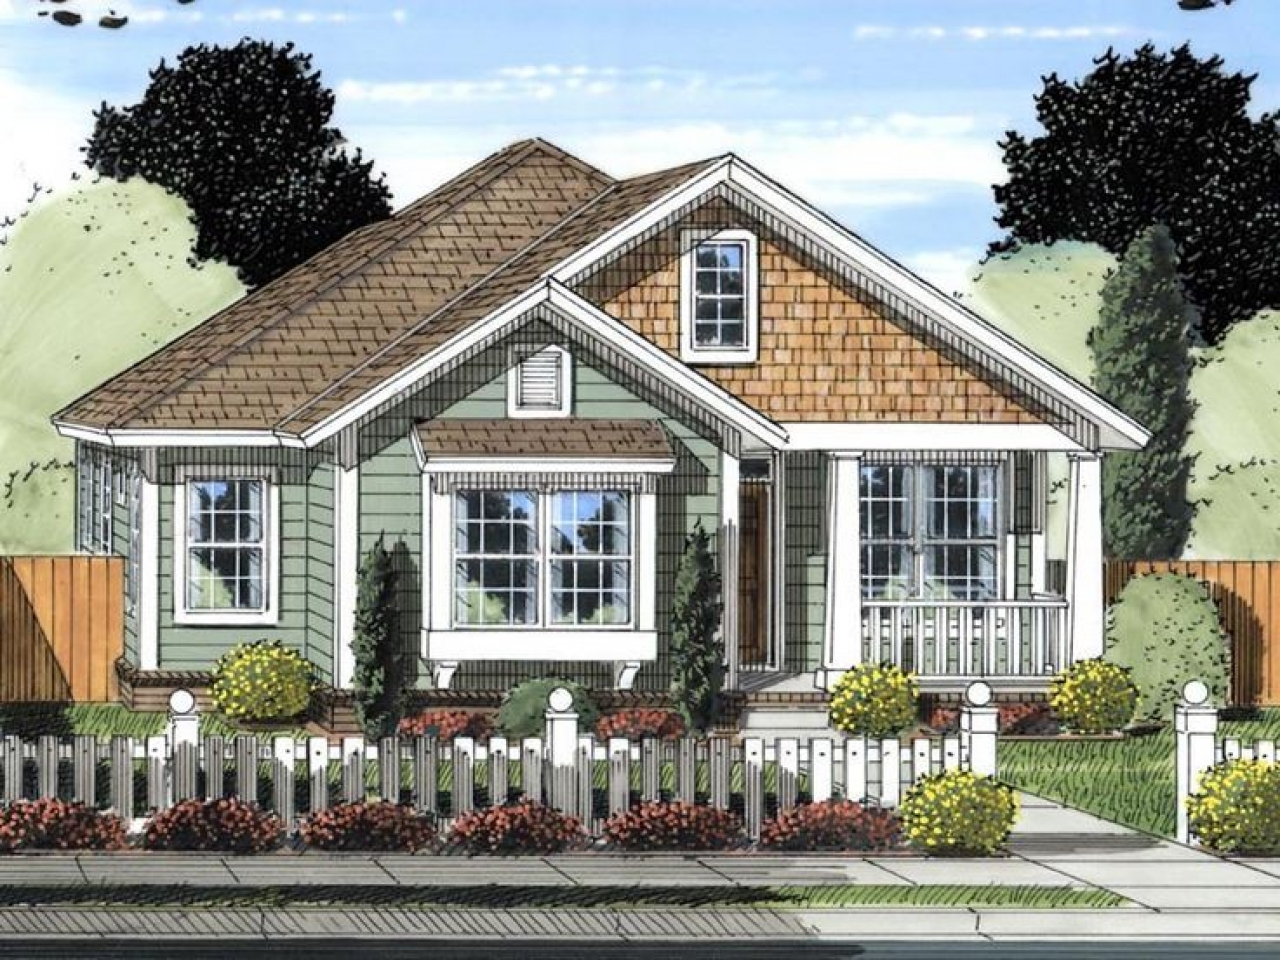 Vintage craftsman house plans craftsman cottage house for Craftsman bungalow home plans